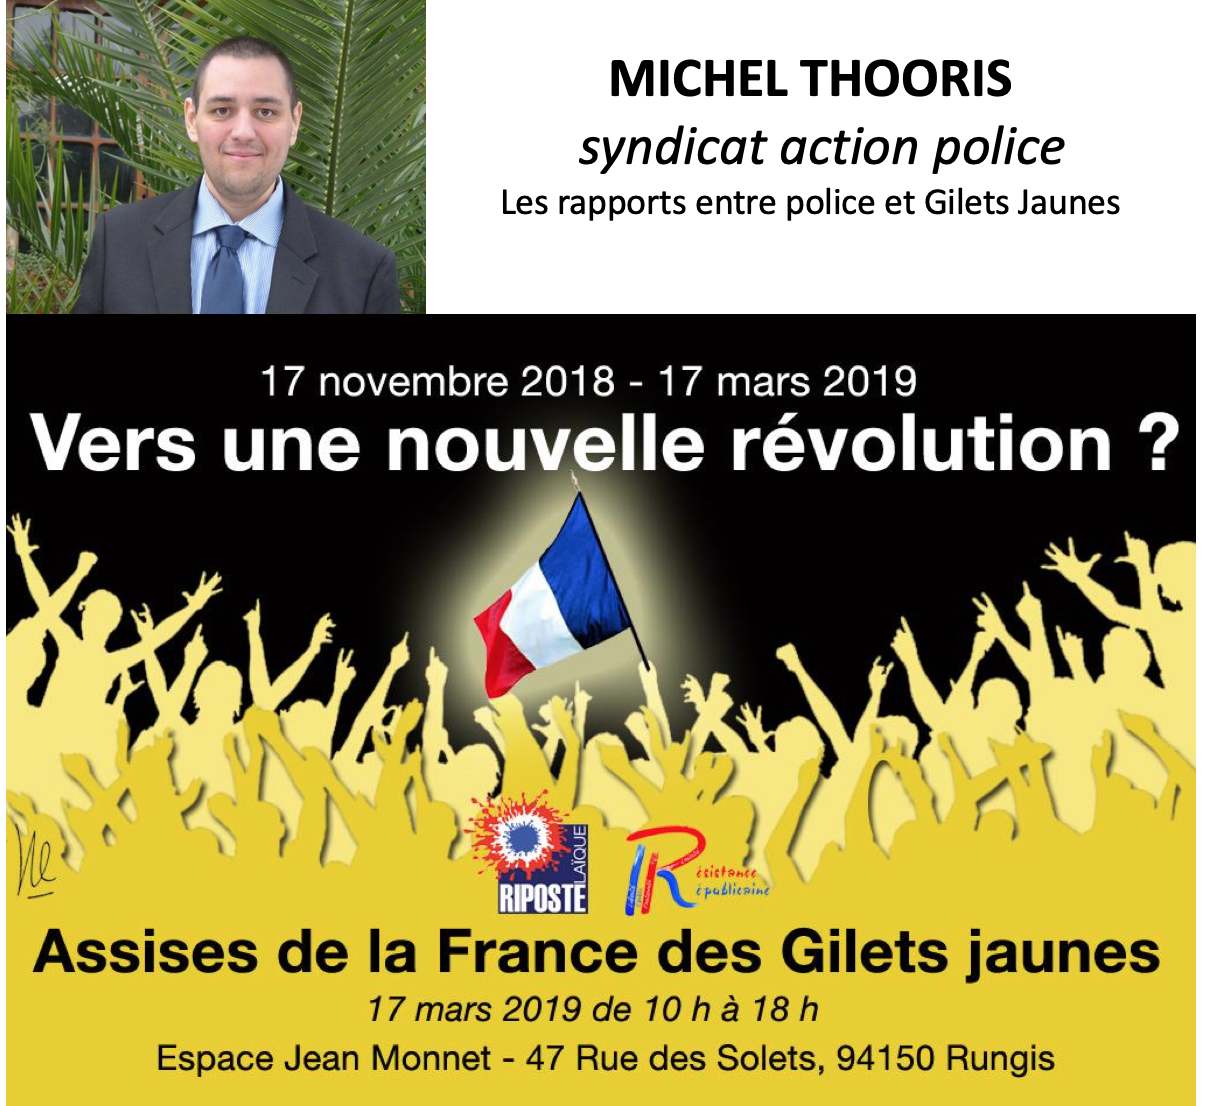 Michel Thooris, du syndicat Action Police, interviendra aux Assises de la France des Gilets Jaunes